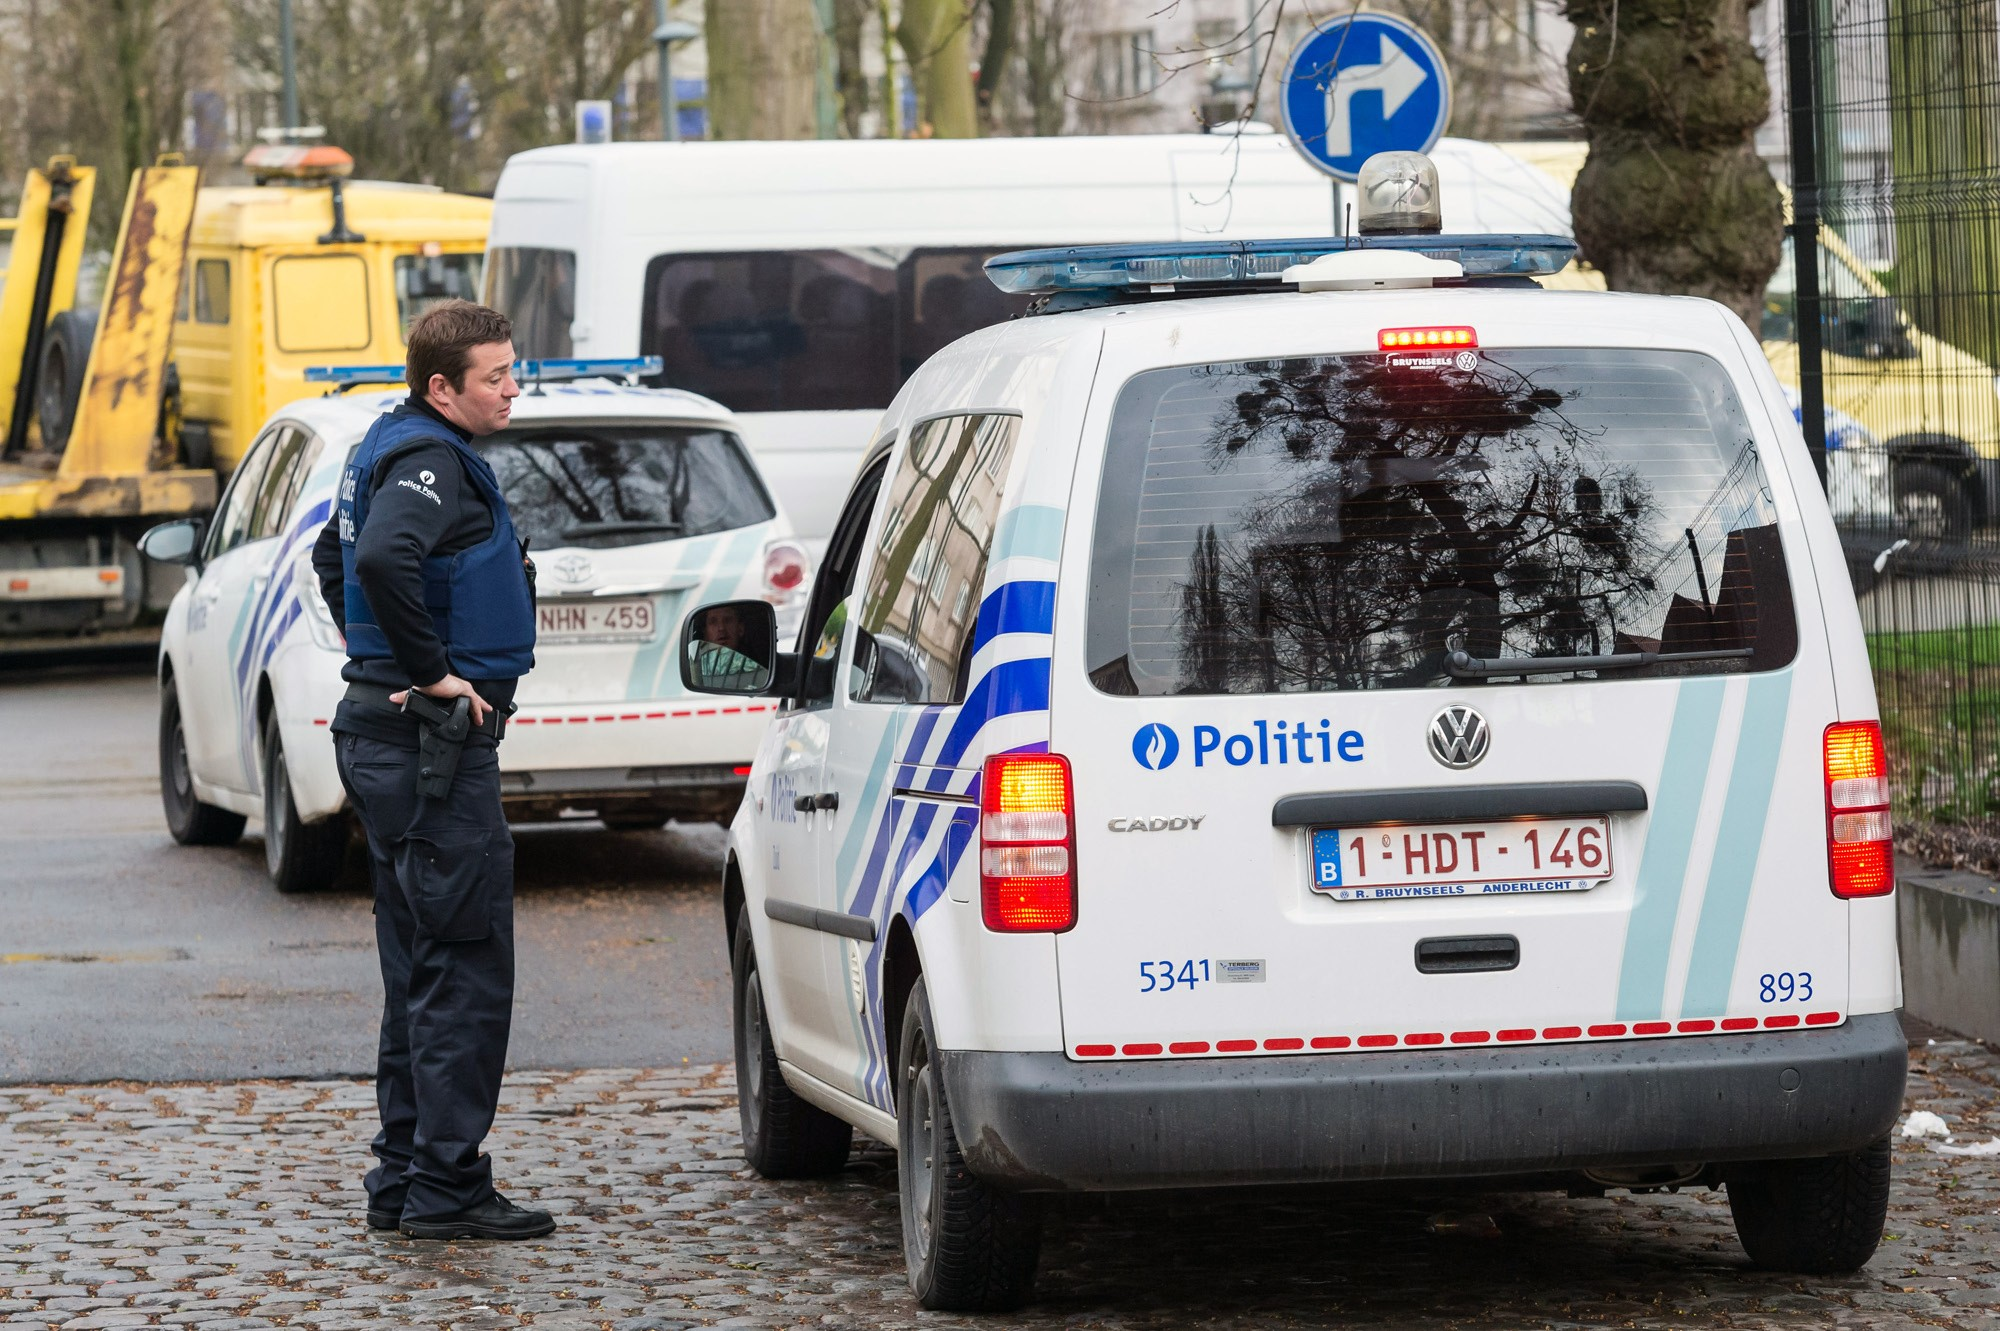 """Police secure an area where two terror suspects were arrested in Brussels on Friday. One of the men arrested, Mohamed Abrini, is believed to be the mysterious """"man in the hat"""" who escaped the double bombing at the Zaventem airport, according to one of the French officials."""